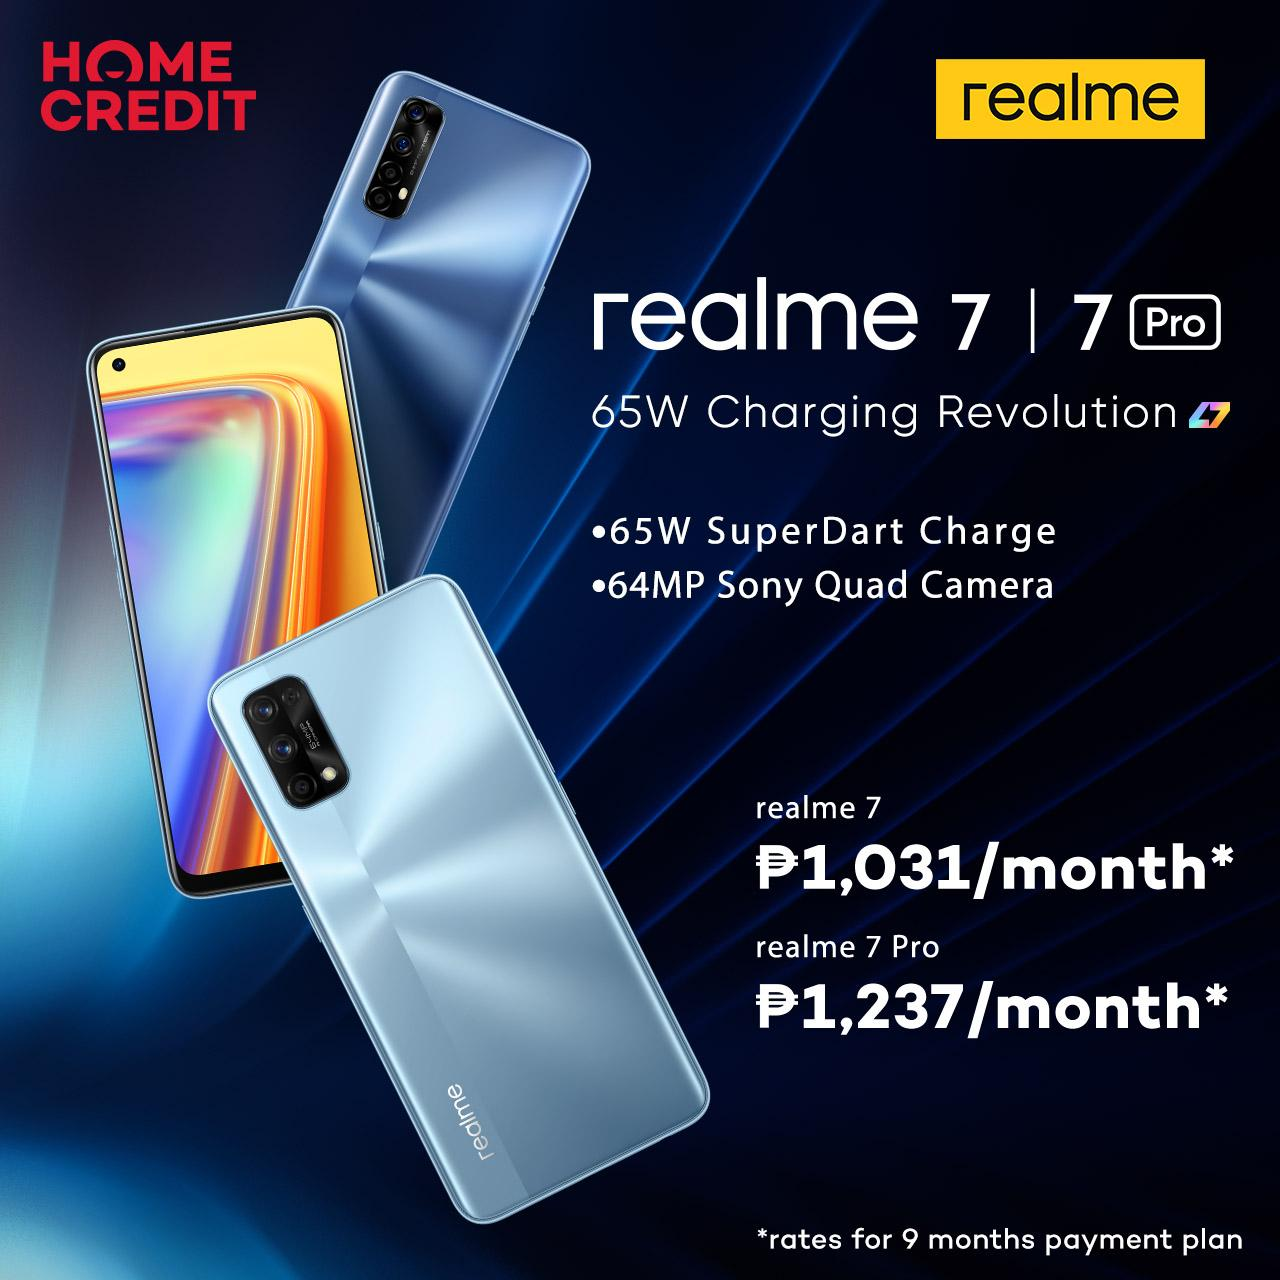 Get first dibs on the newest realme 7 Series with Home Credit's 0% installment plans